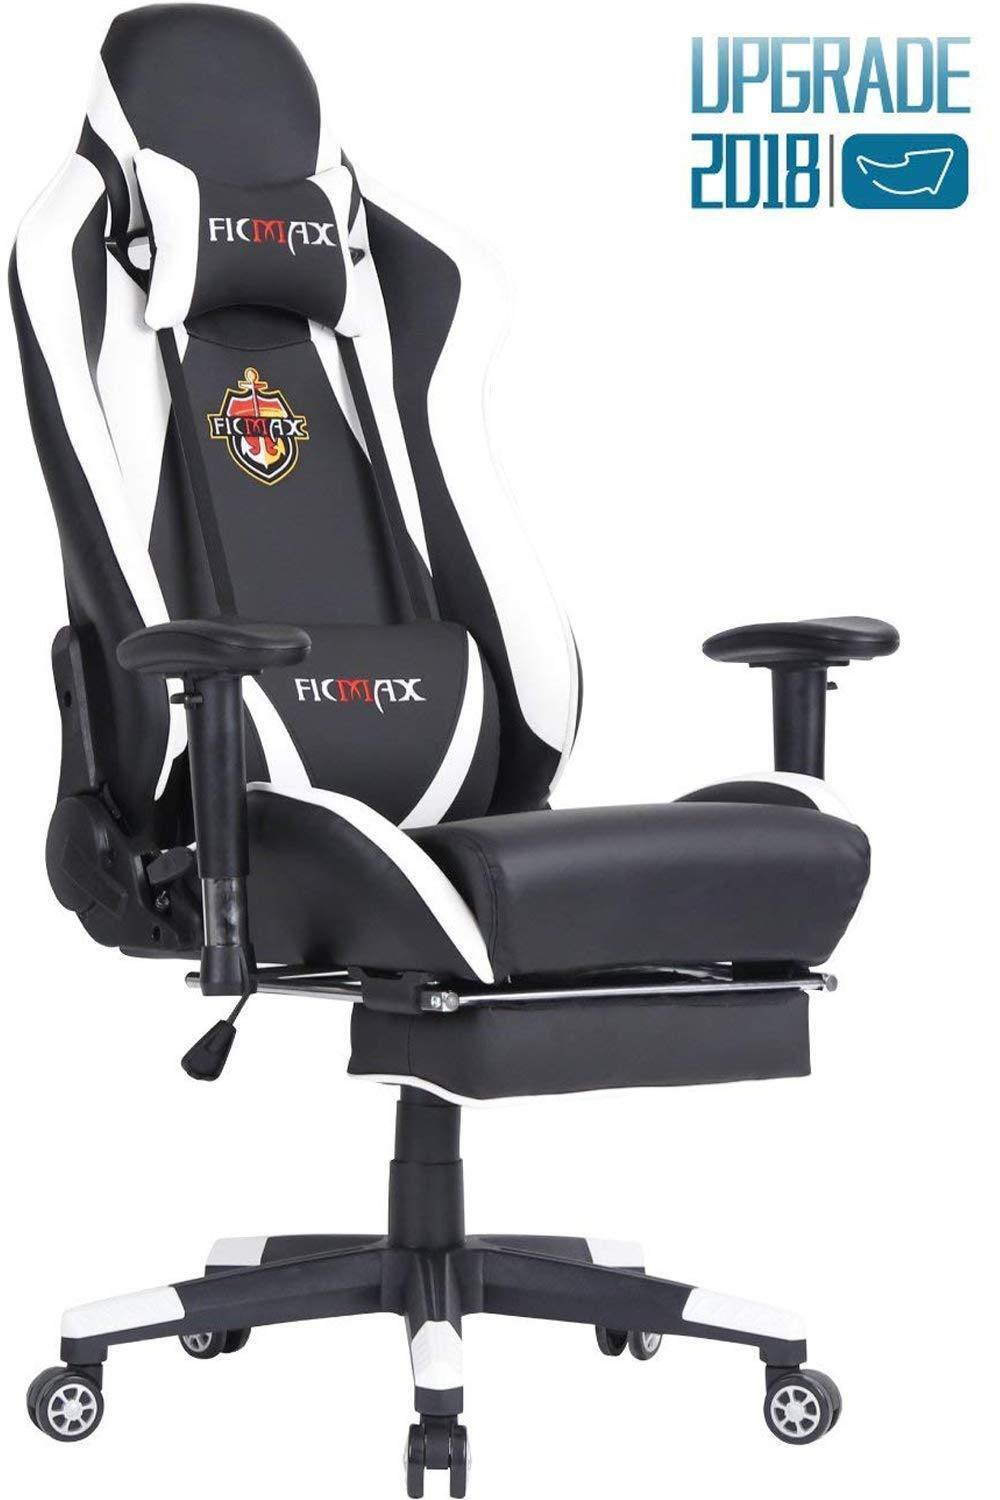 gamer video gaming chair computer work office